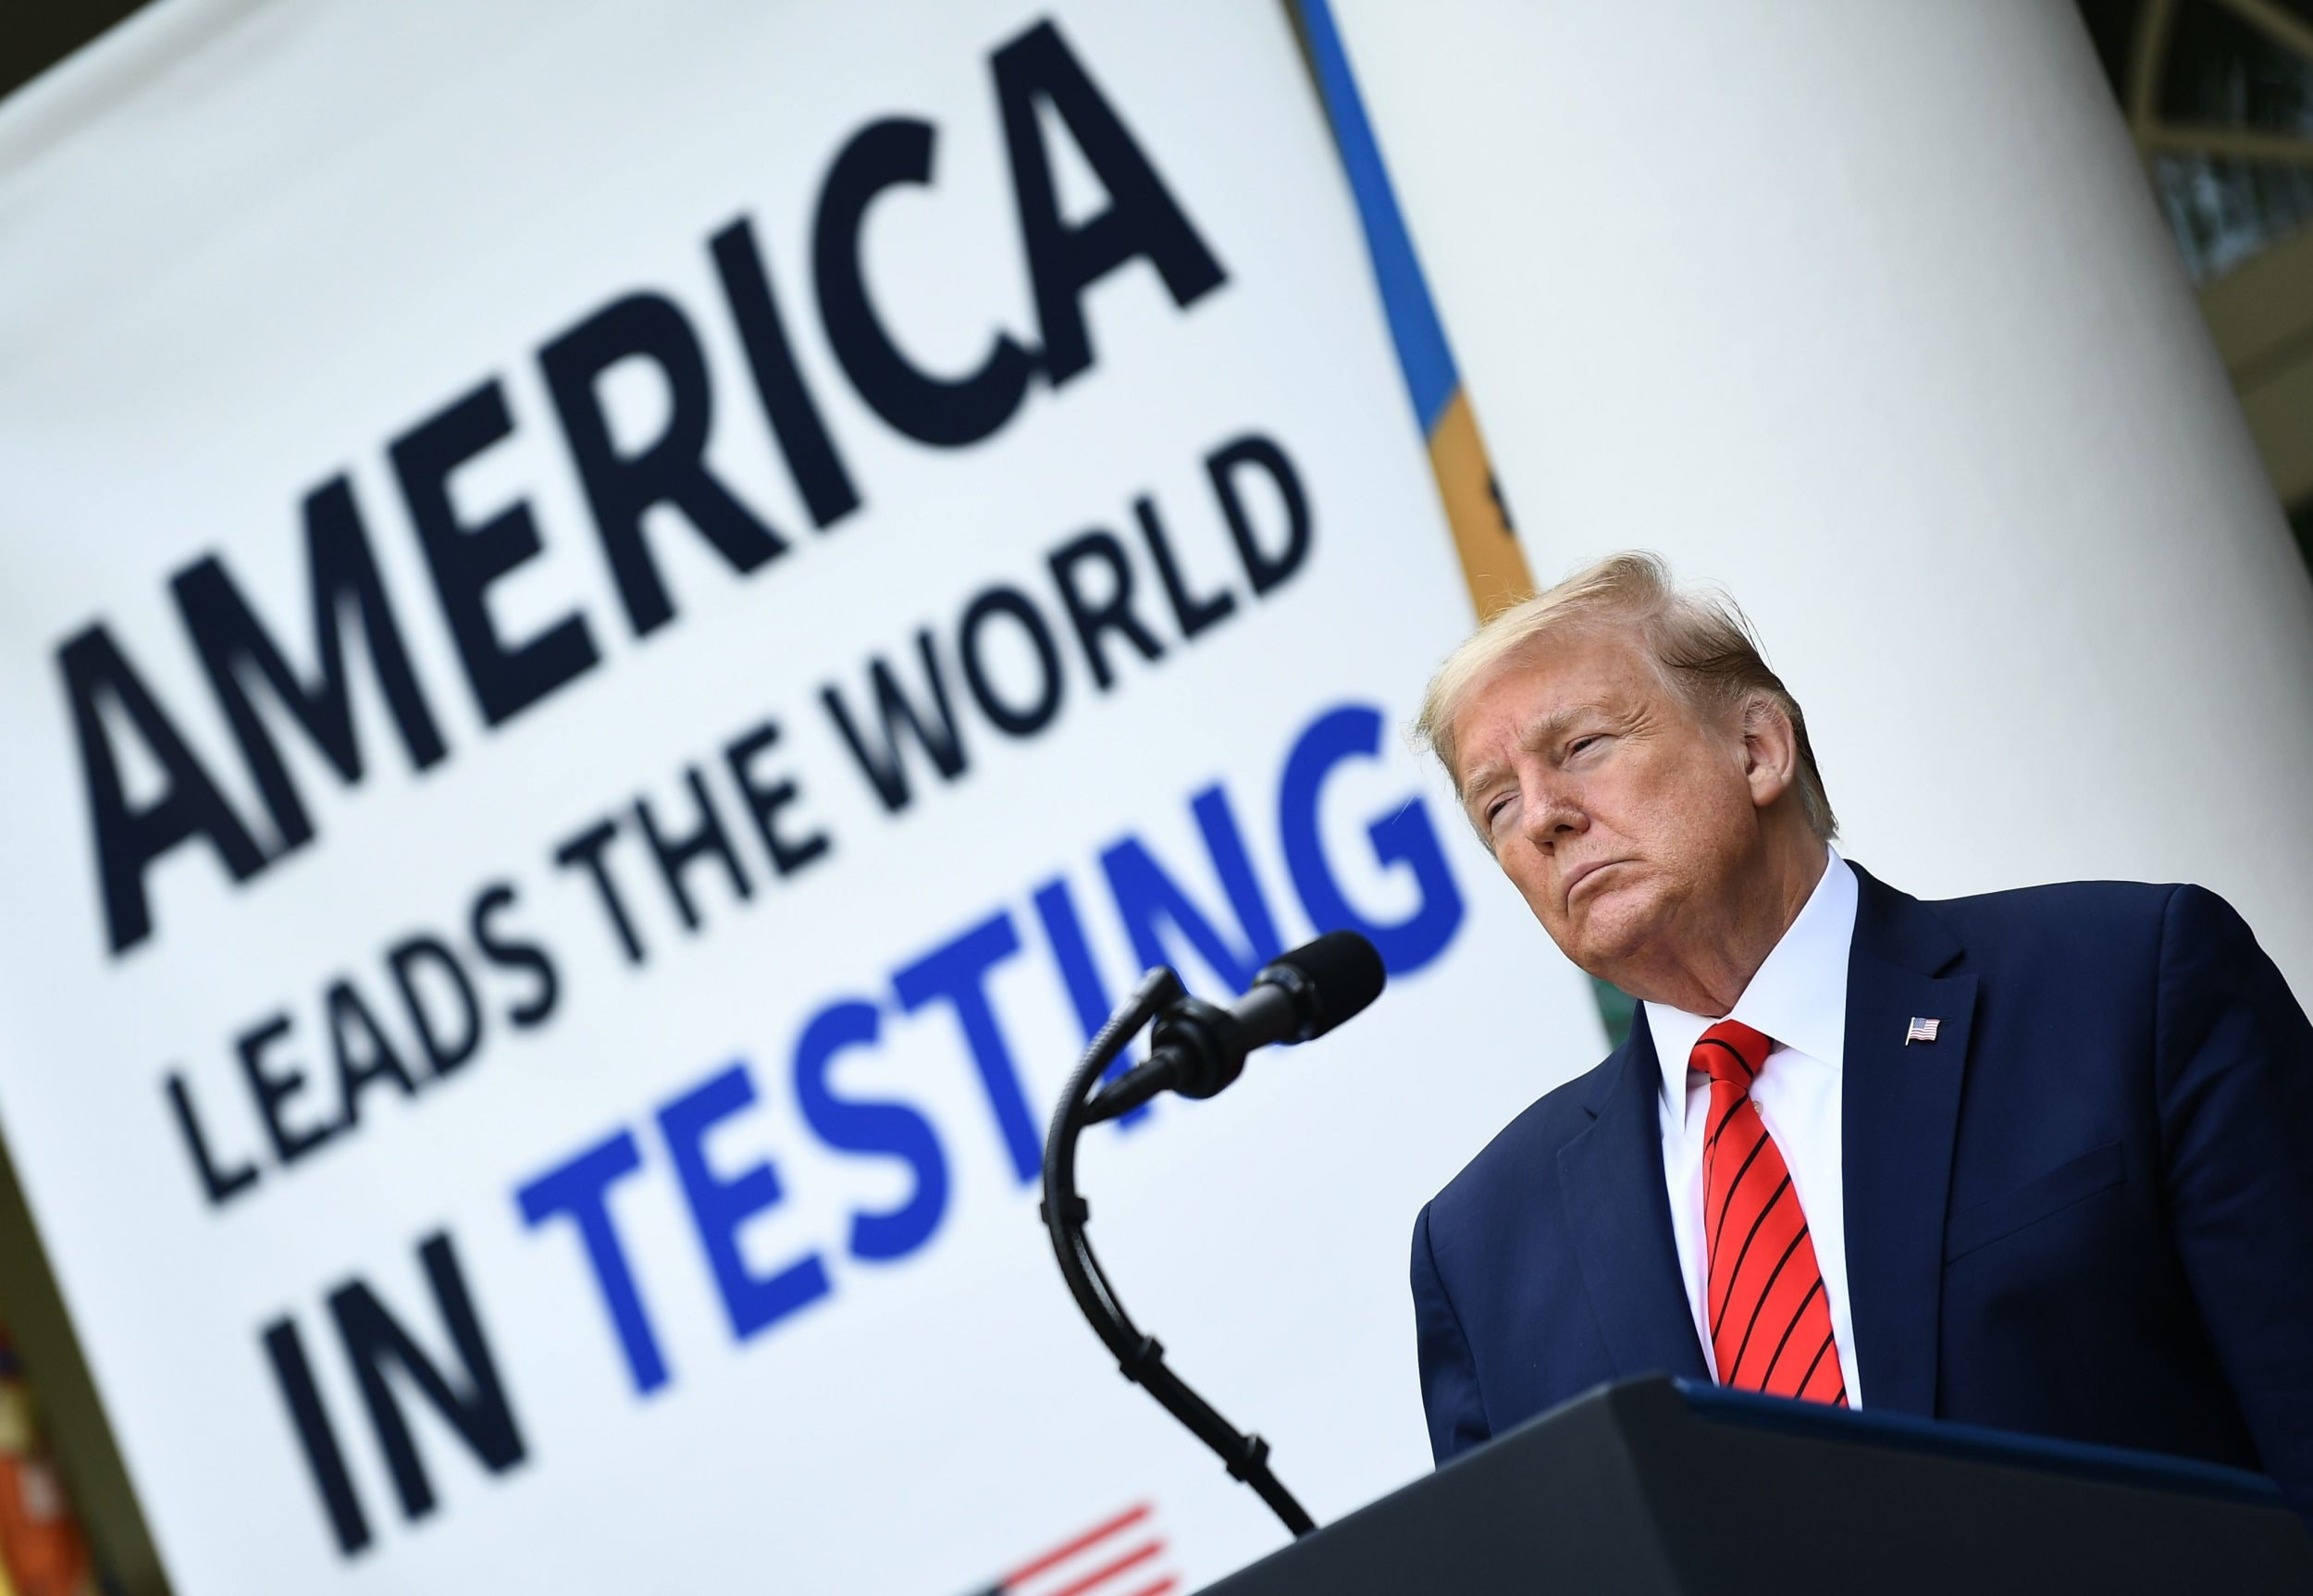 Trump news – live: President pressures California to let Elon Musk reopen Tesla factory, after storming out of press conference over spat with female reporters